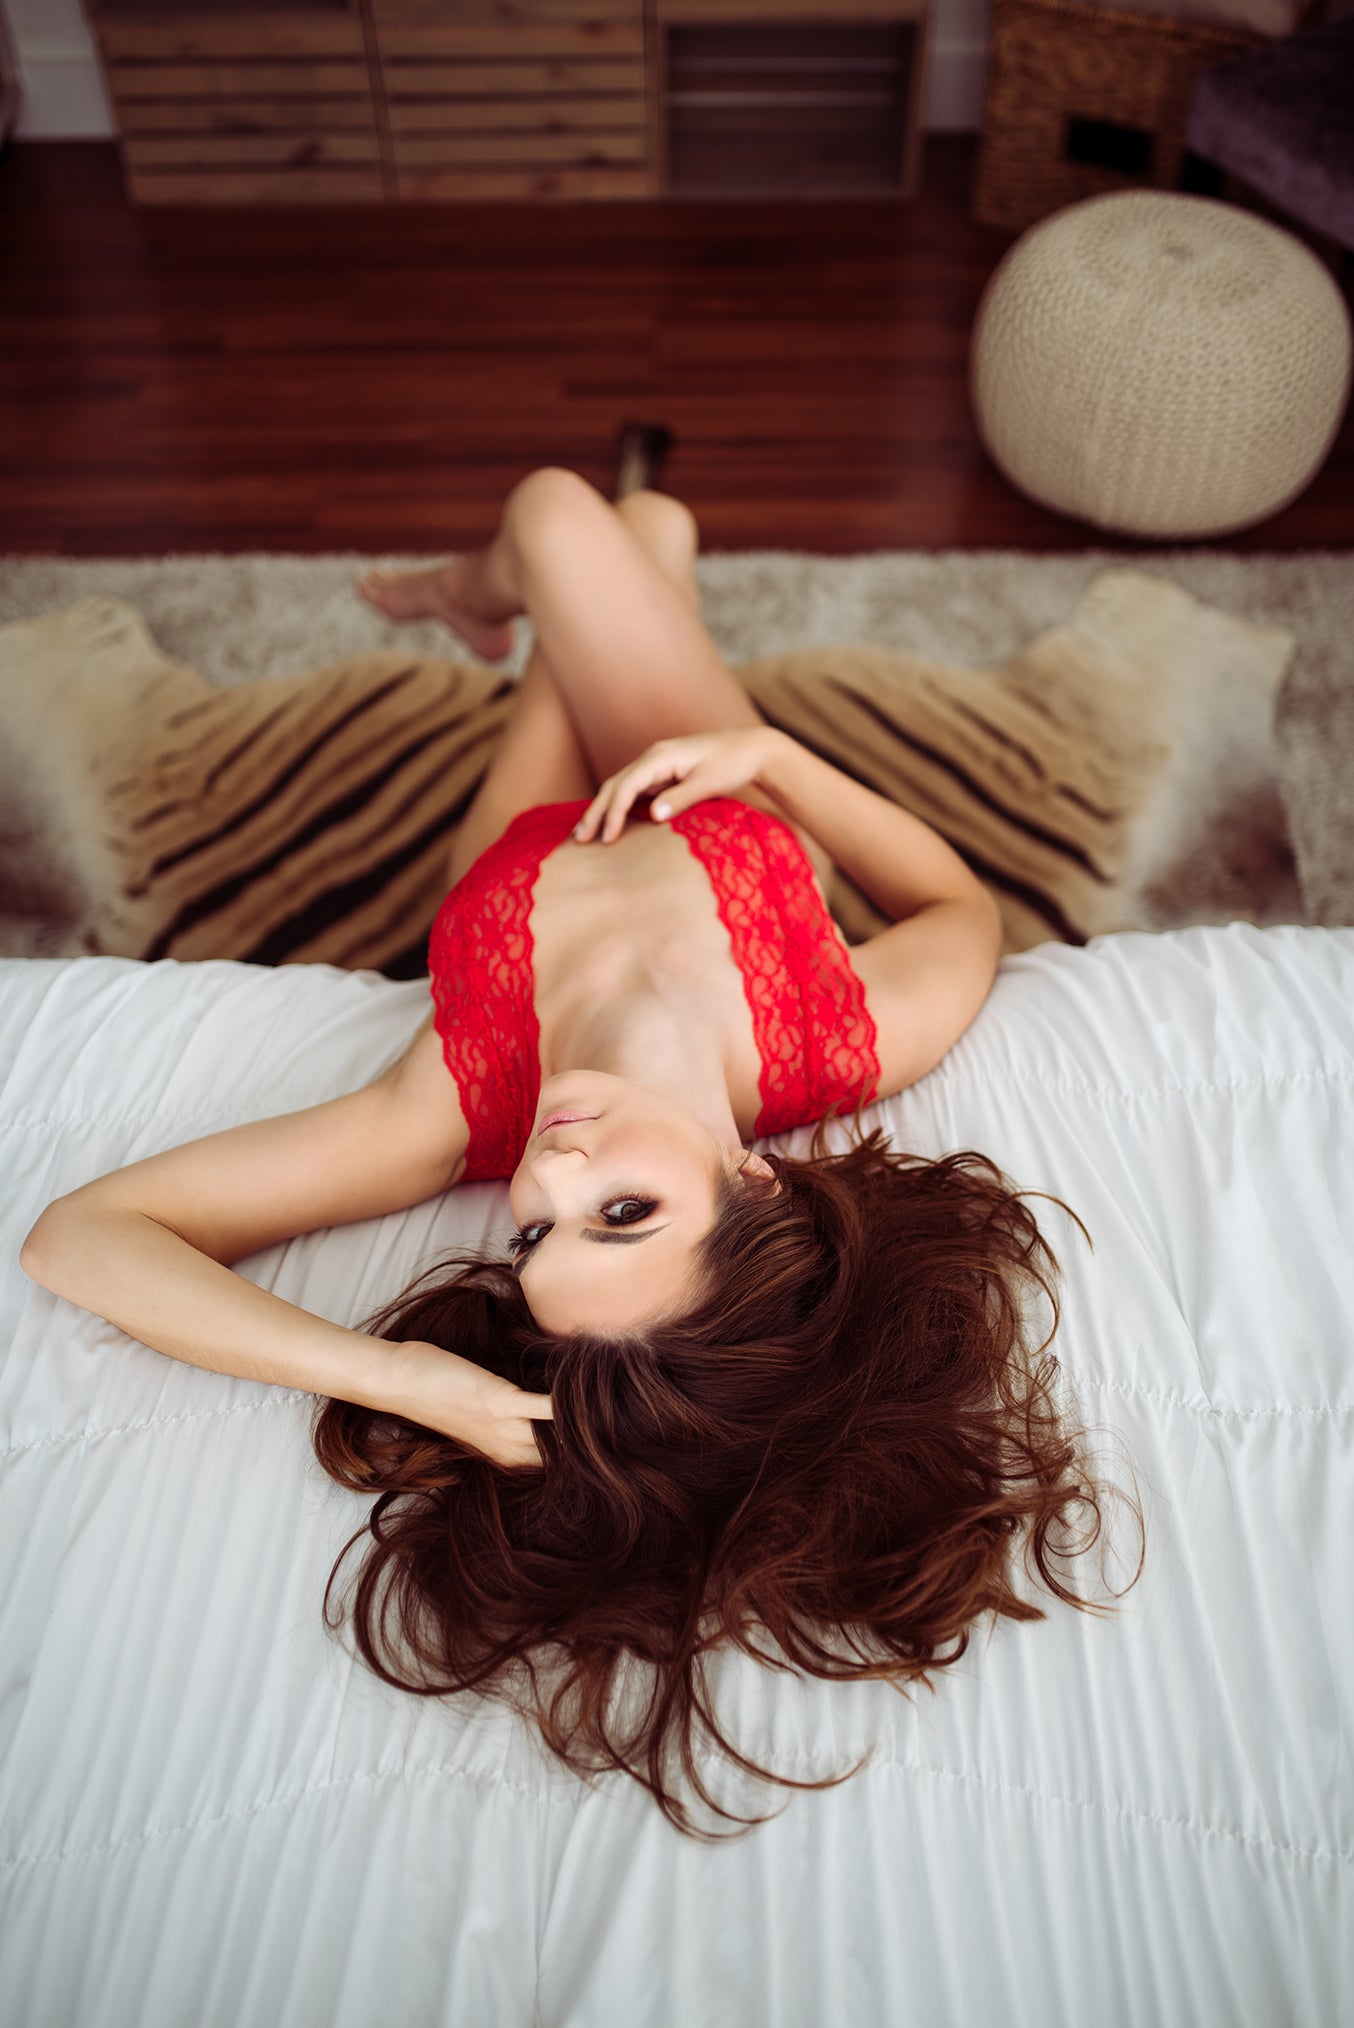 Boudoir photo editing tips